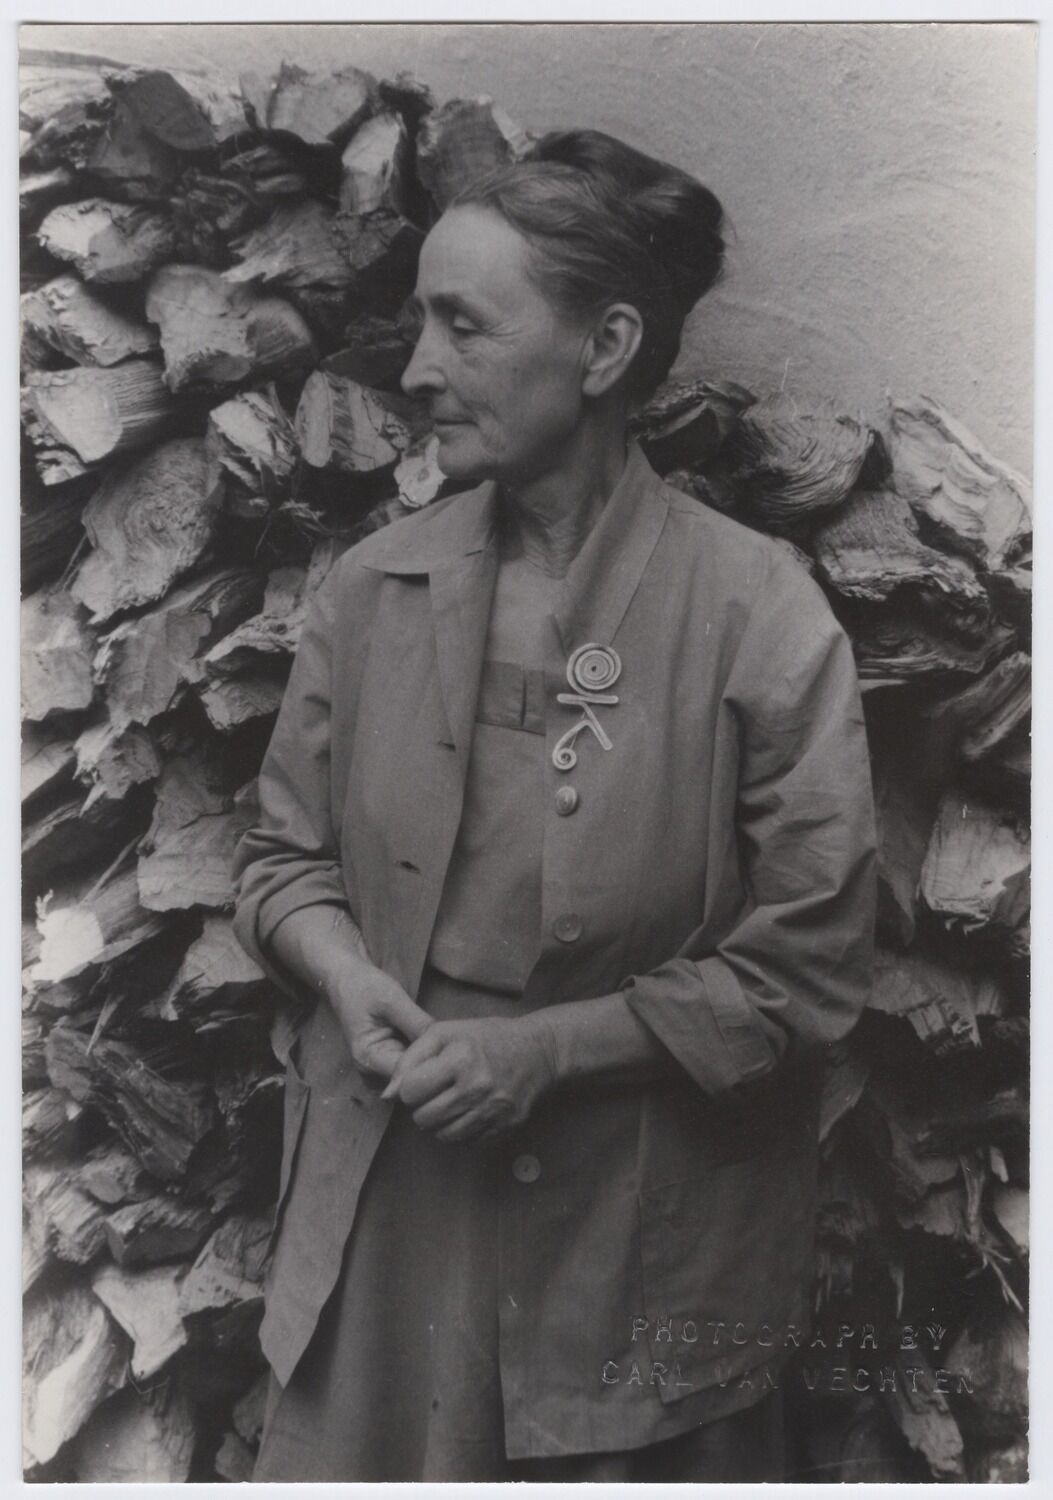 Carl Van Vechten, Georgia O'Keeffe at Abiquiu, NM, 1950. Photo © Van Vechten Trust. Artwork © 2017 Calder Foundation, New York / Artists Rights Society (ARS), New York.